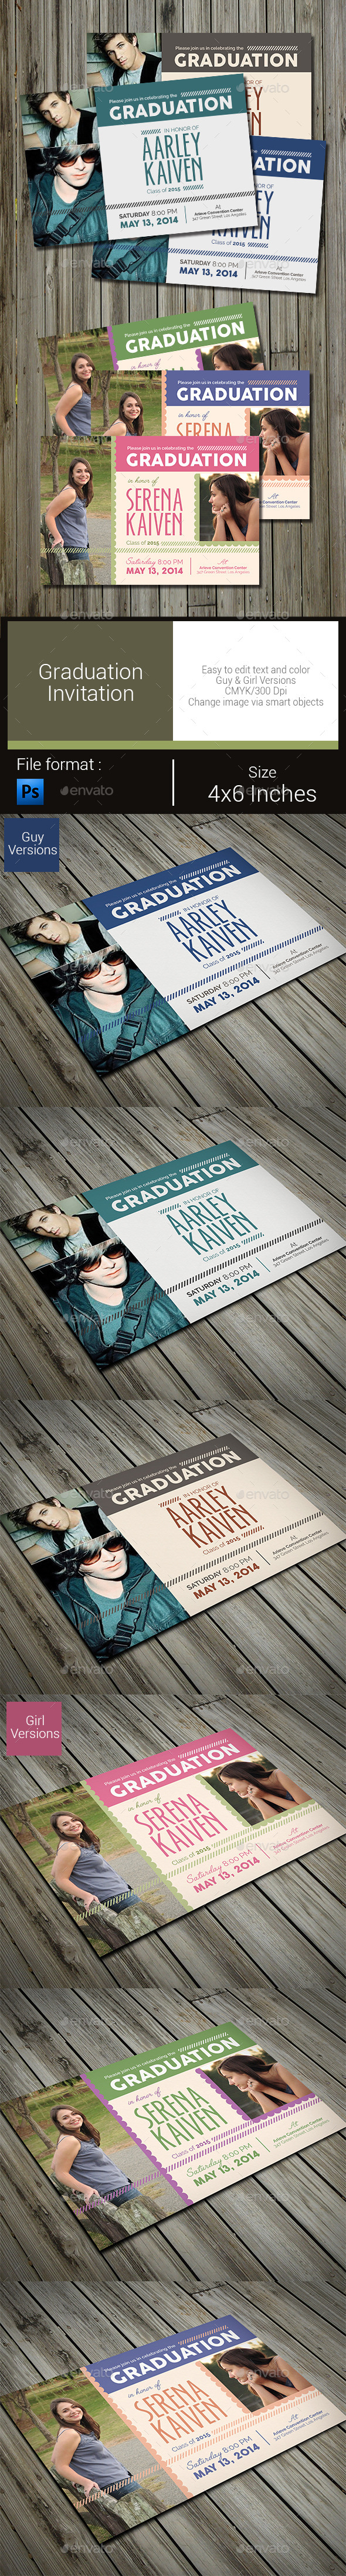 GraphicRiver Graduation Invitation 10374894